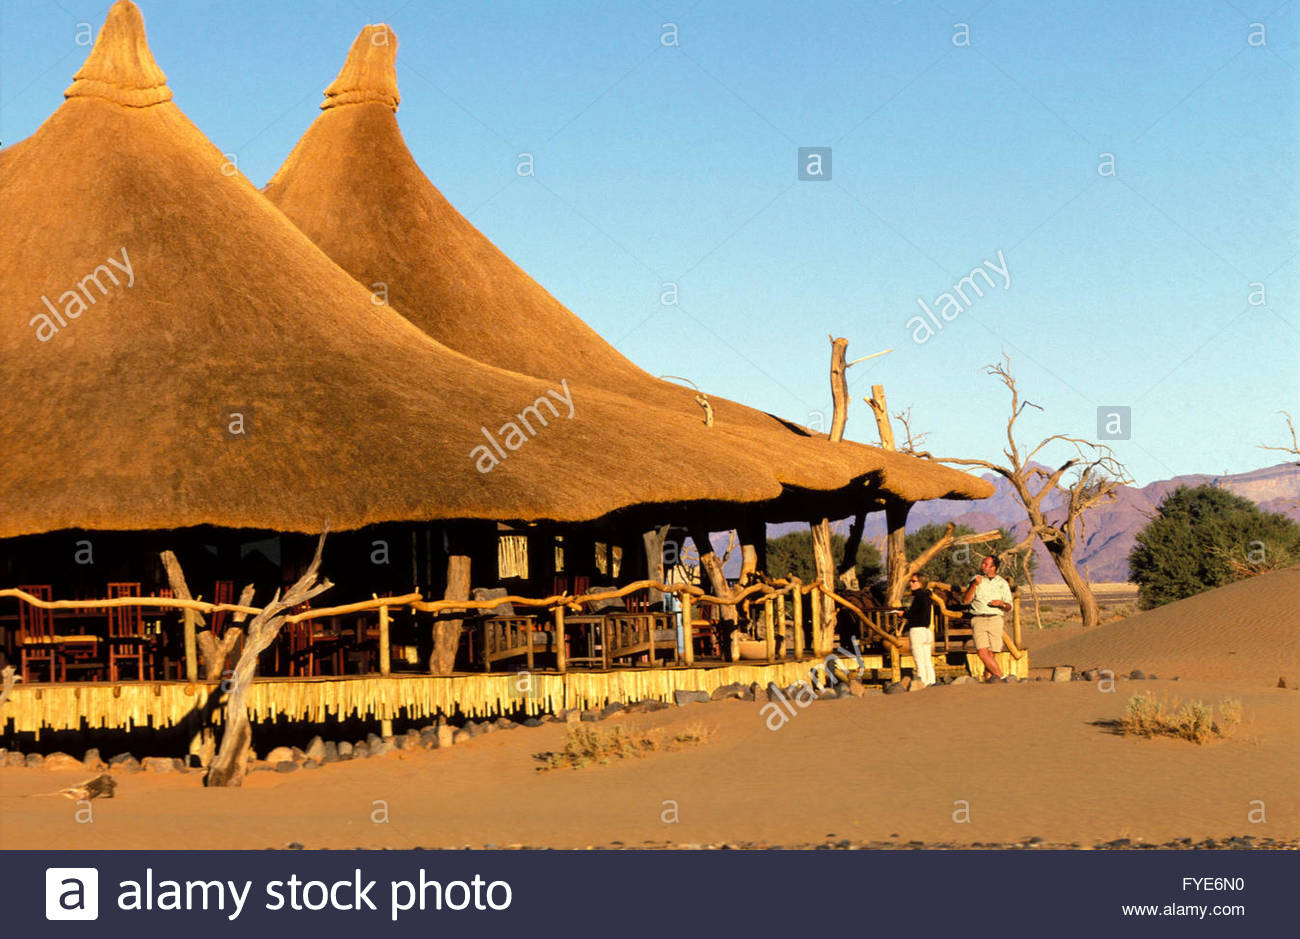 The Little Kulala lodge at Sossusvlei Namibia - Stock Image